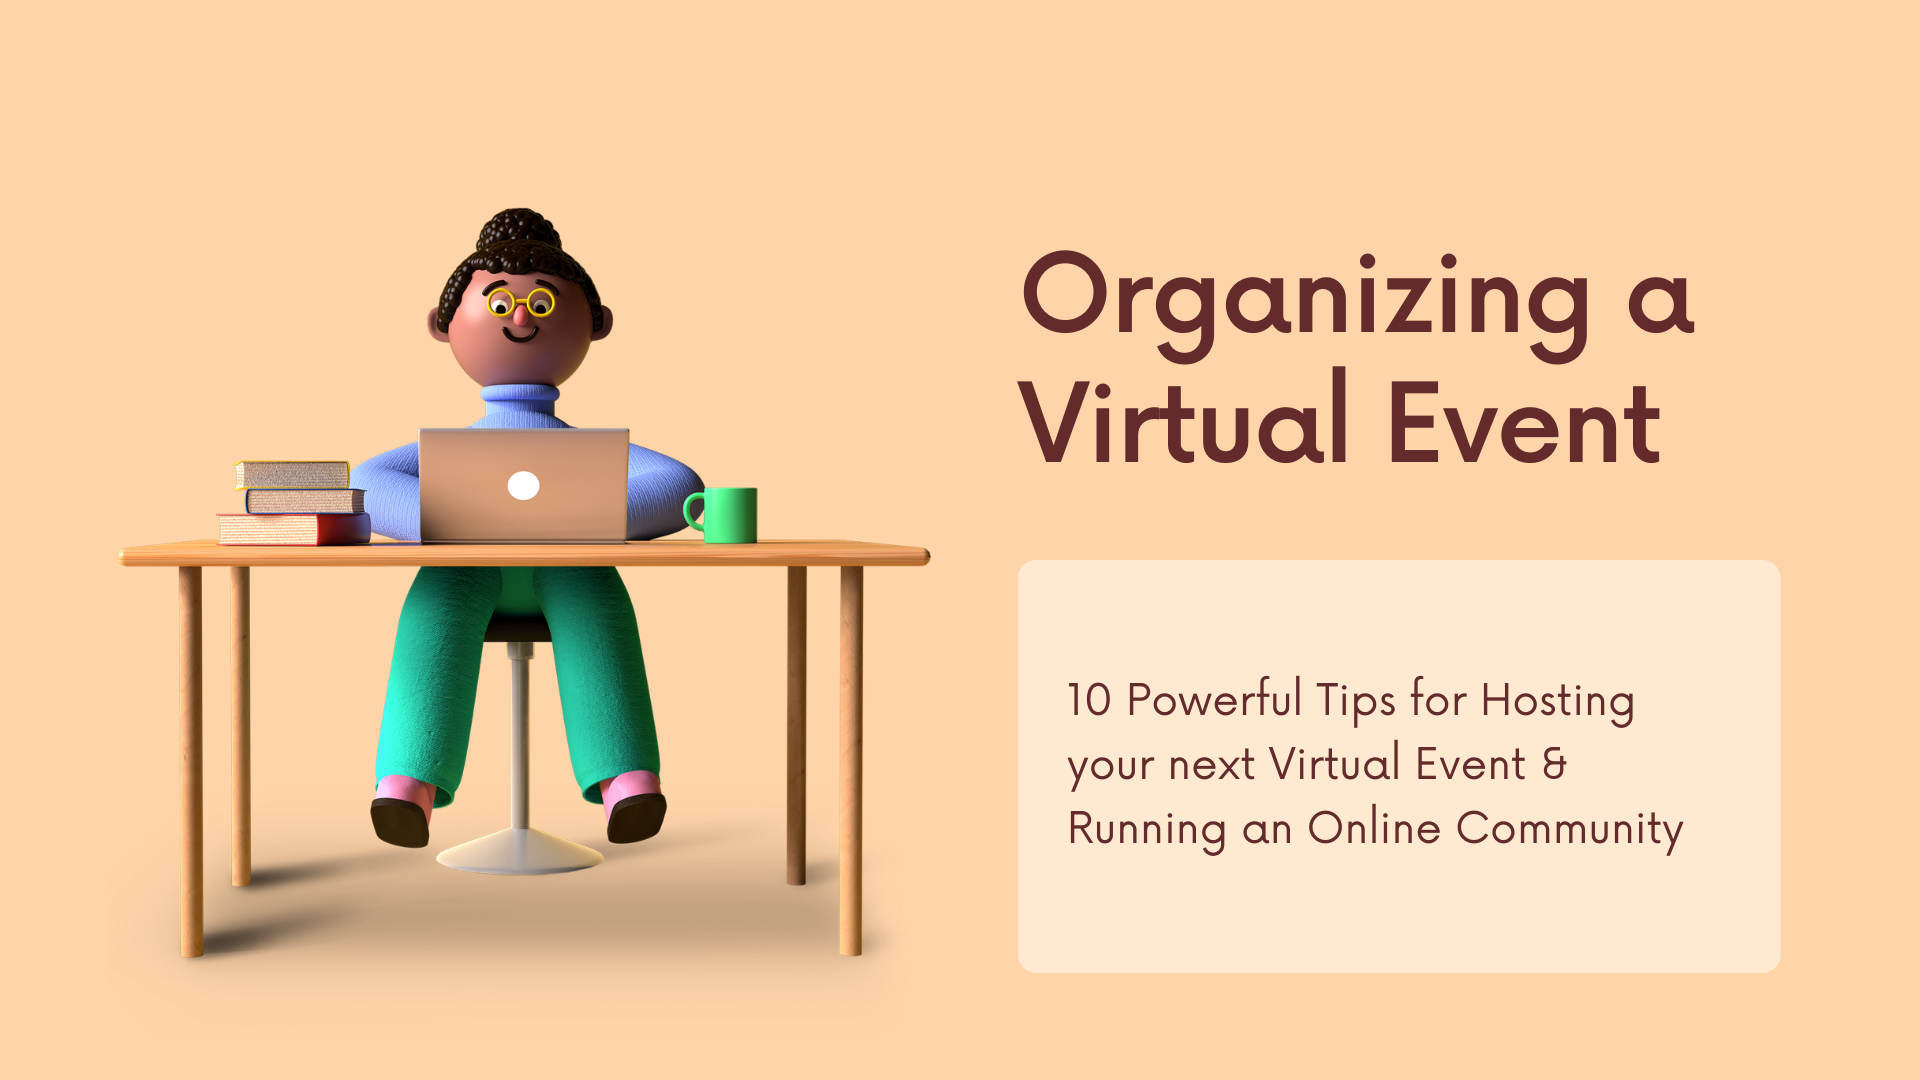 organizing-a-virtual-event